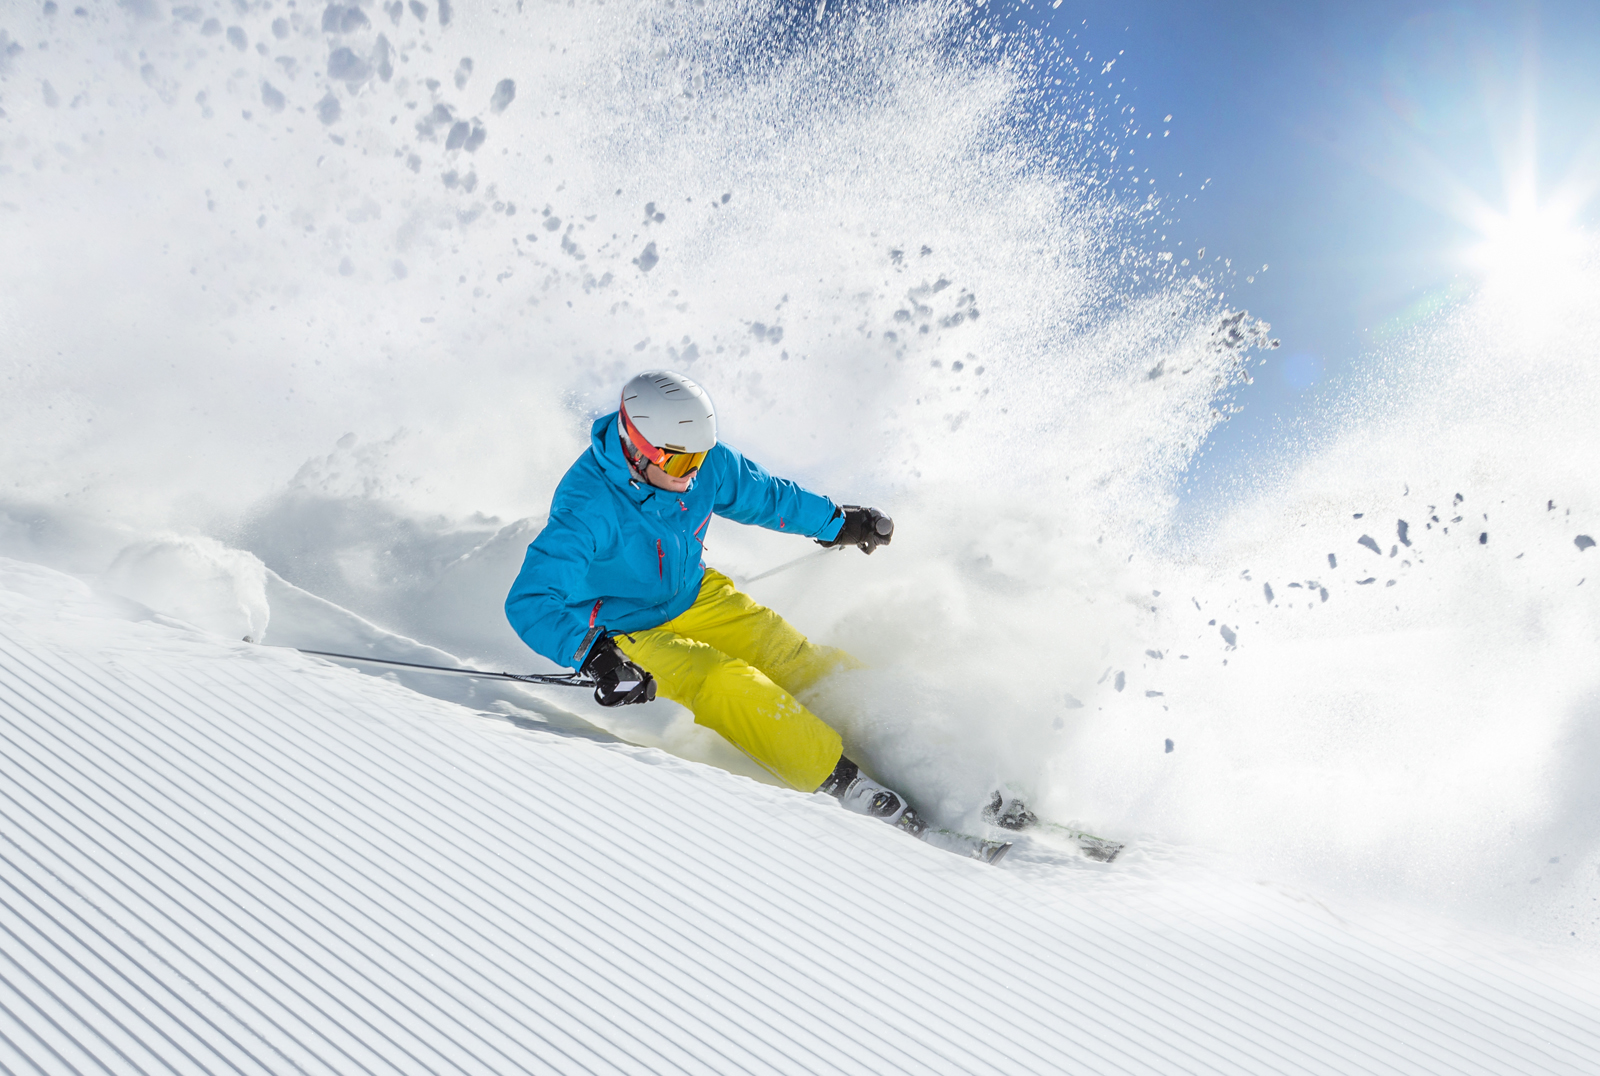 THE SHAKE-UP CONTINUES – DEER VALLEY RESORT ADDED TO PORTFOLIO